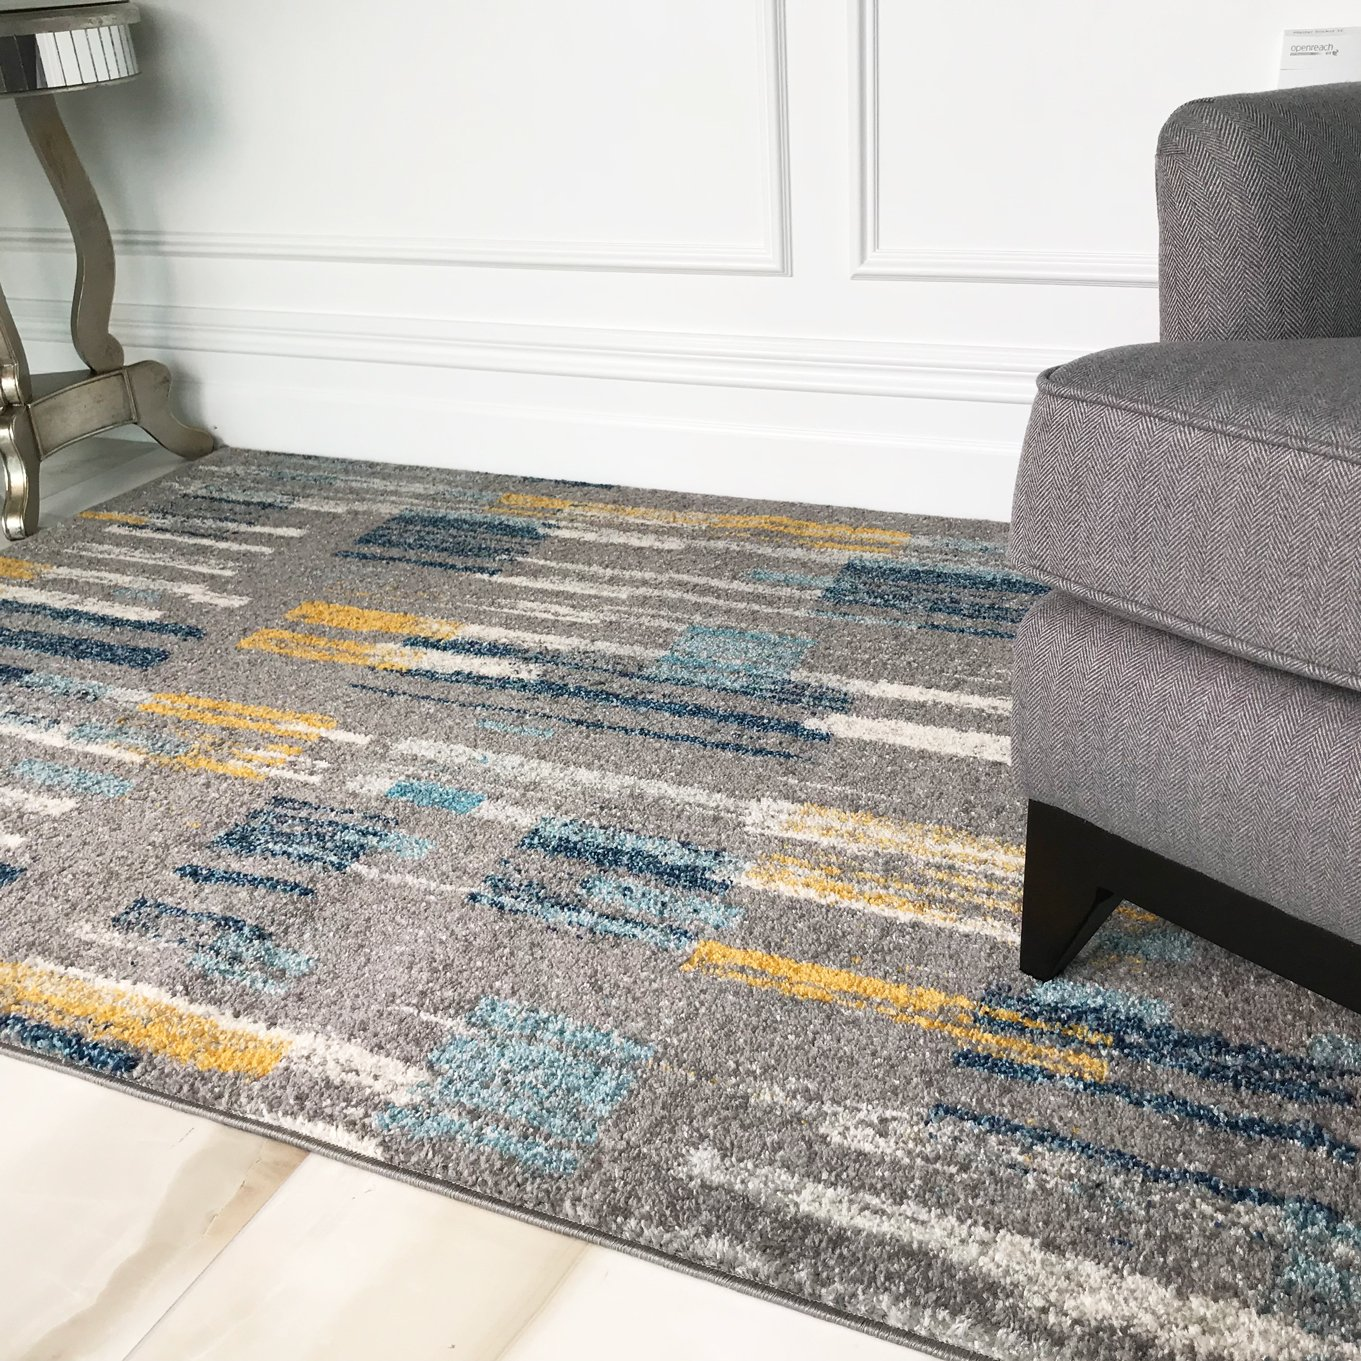 Details about Blue Yellow Paint strokes Striped Living Room Rugs Artistic  Non Shed Area Mat